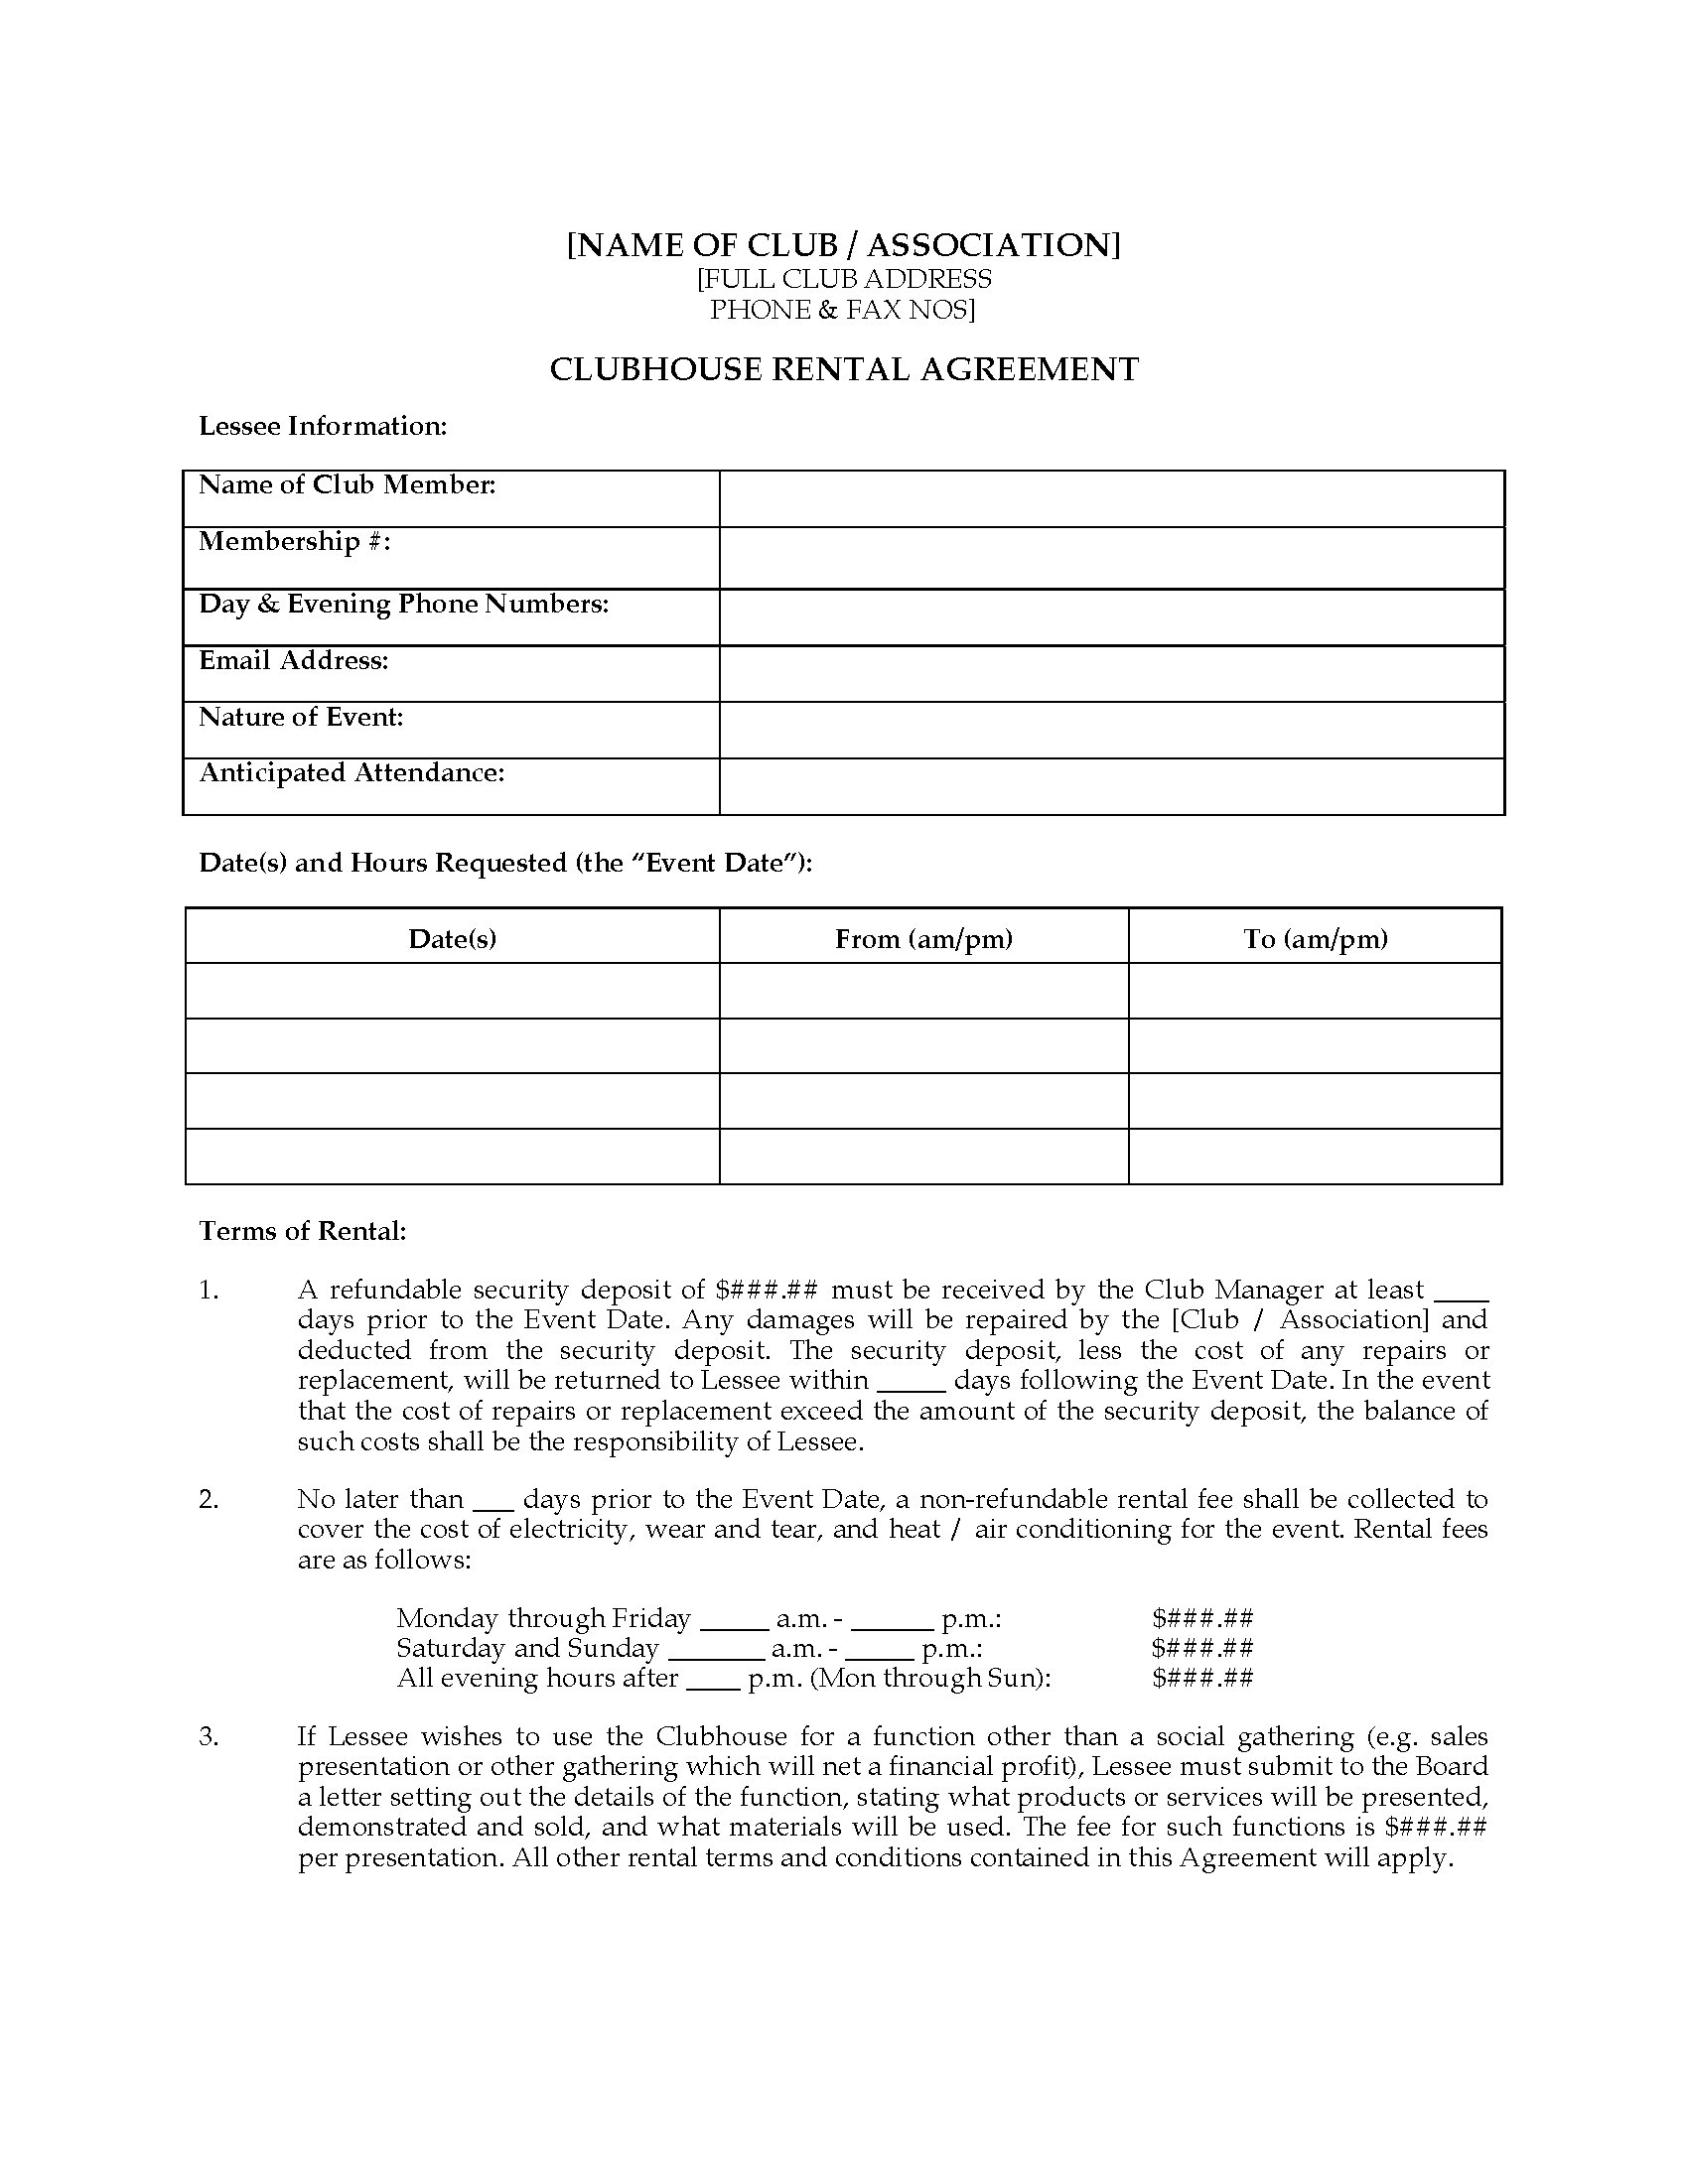 Canada Club House Rental Agreement Legal Forms And Business